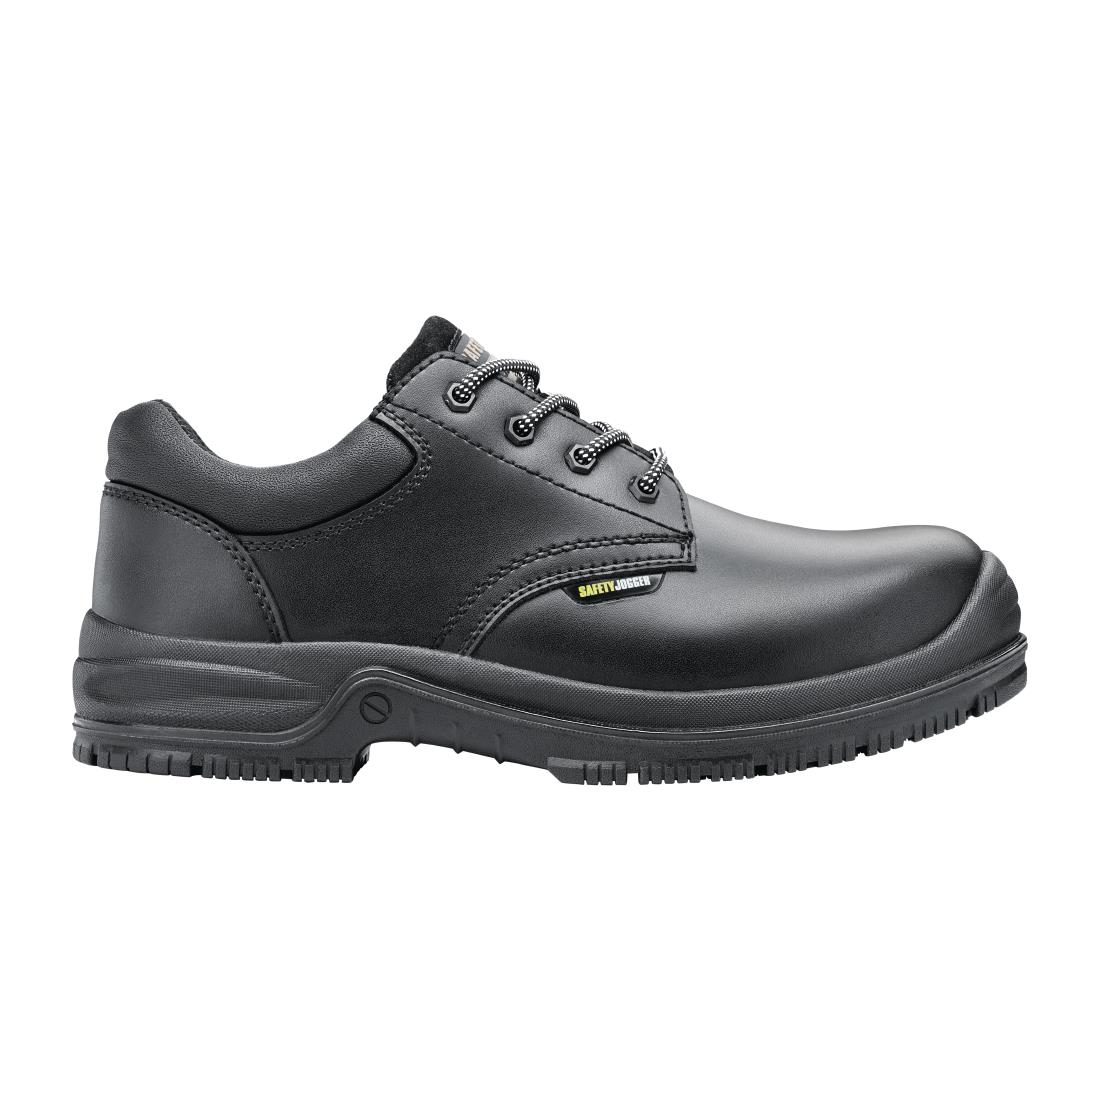 Shoes For Crews X111081 Safety Shoe Black Size 45